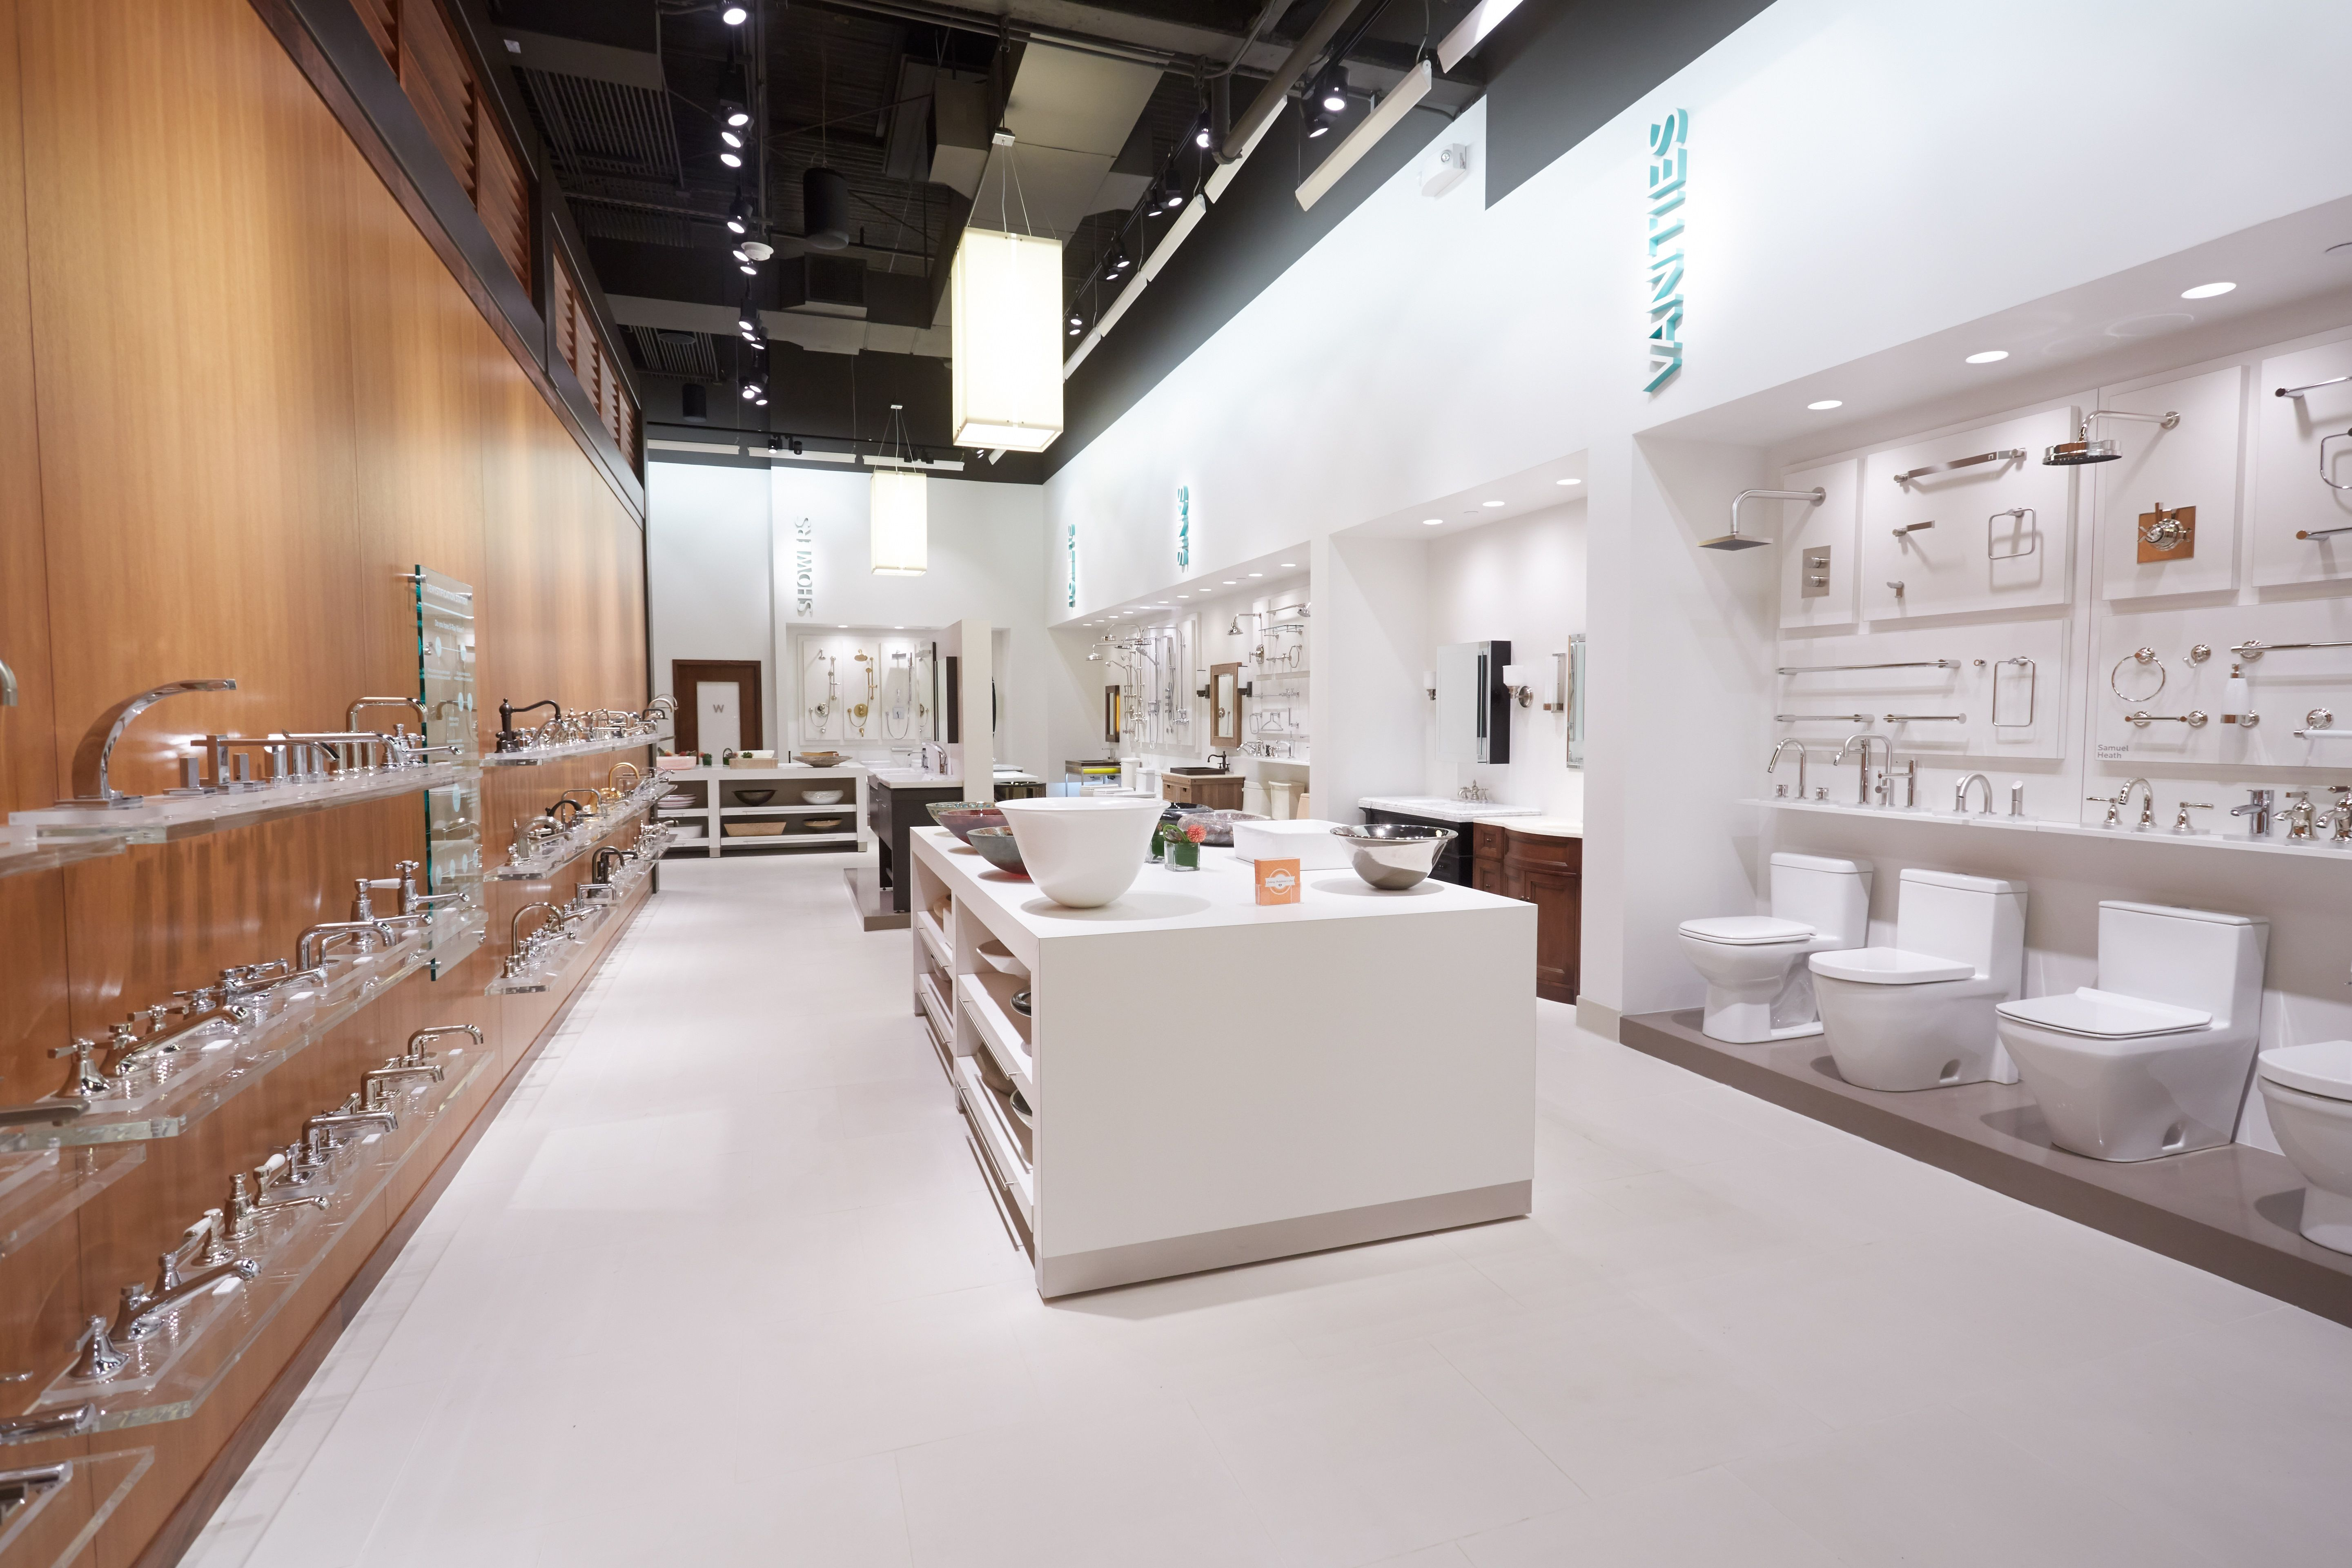 Faucets sinks toilets shower heads vanities and more - Bathroom design showroom dallas tx ...